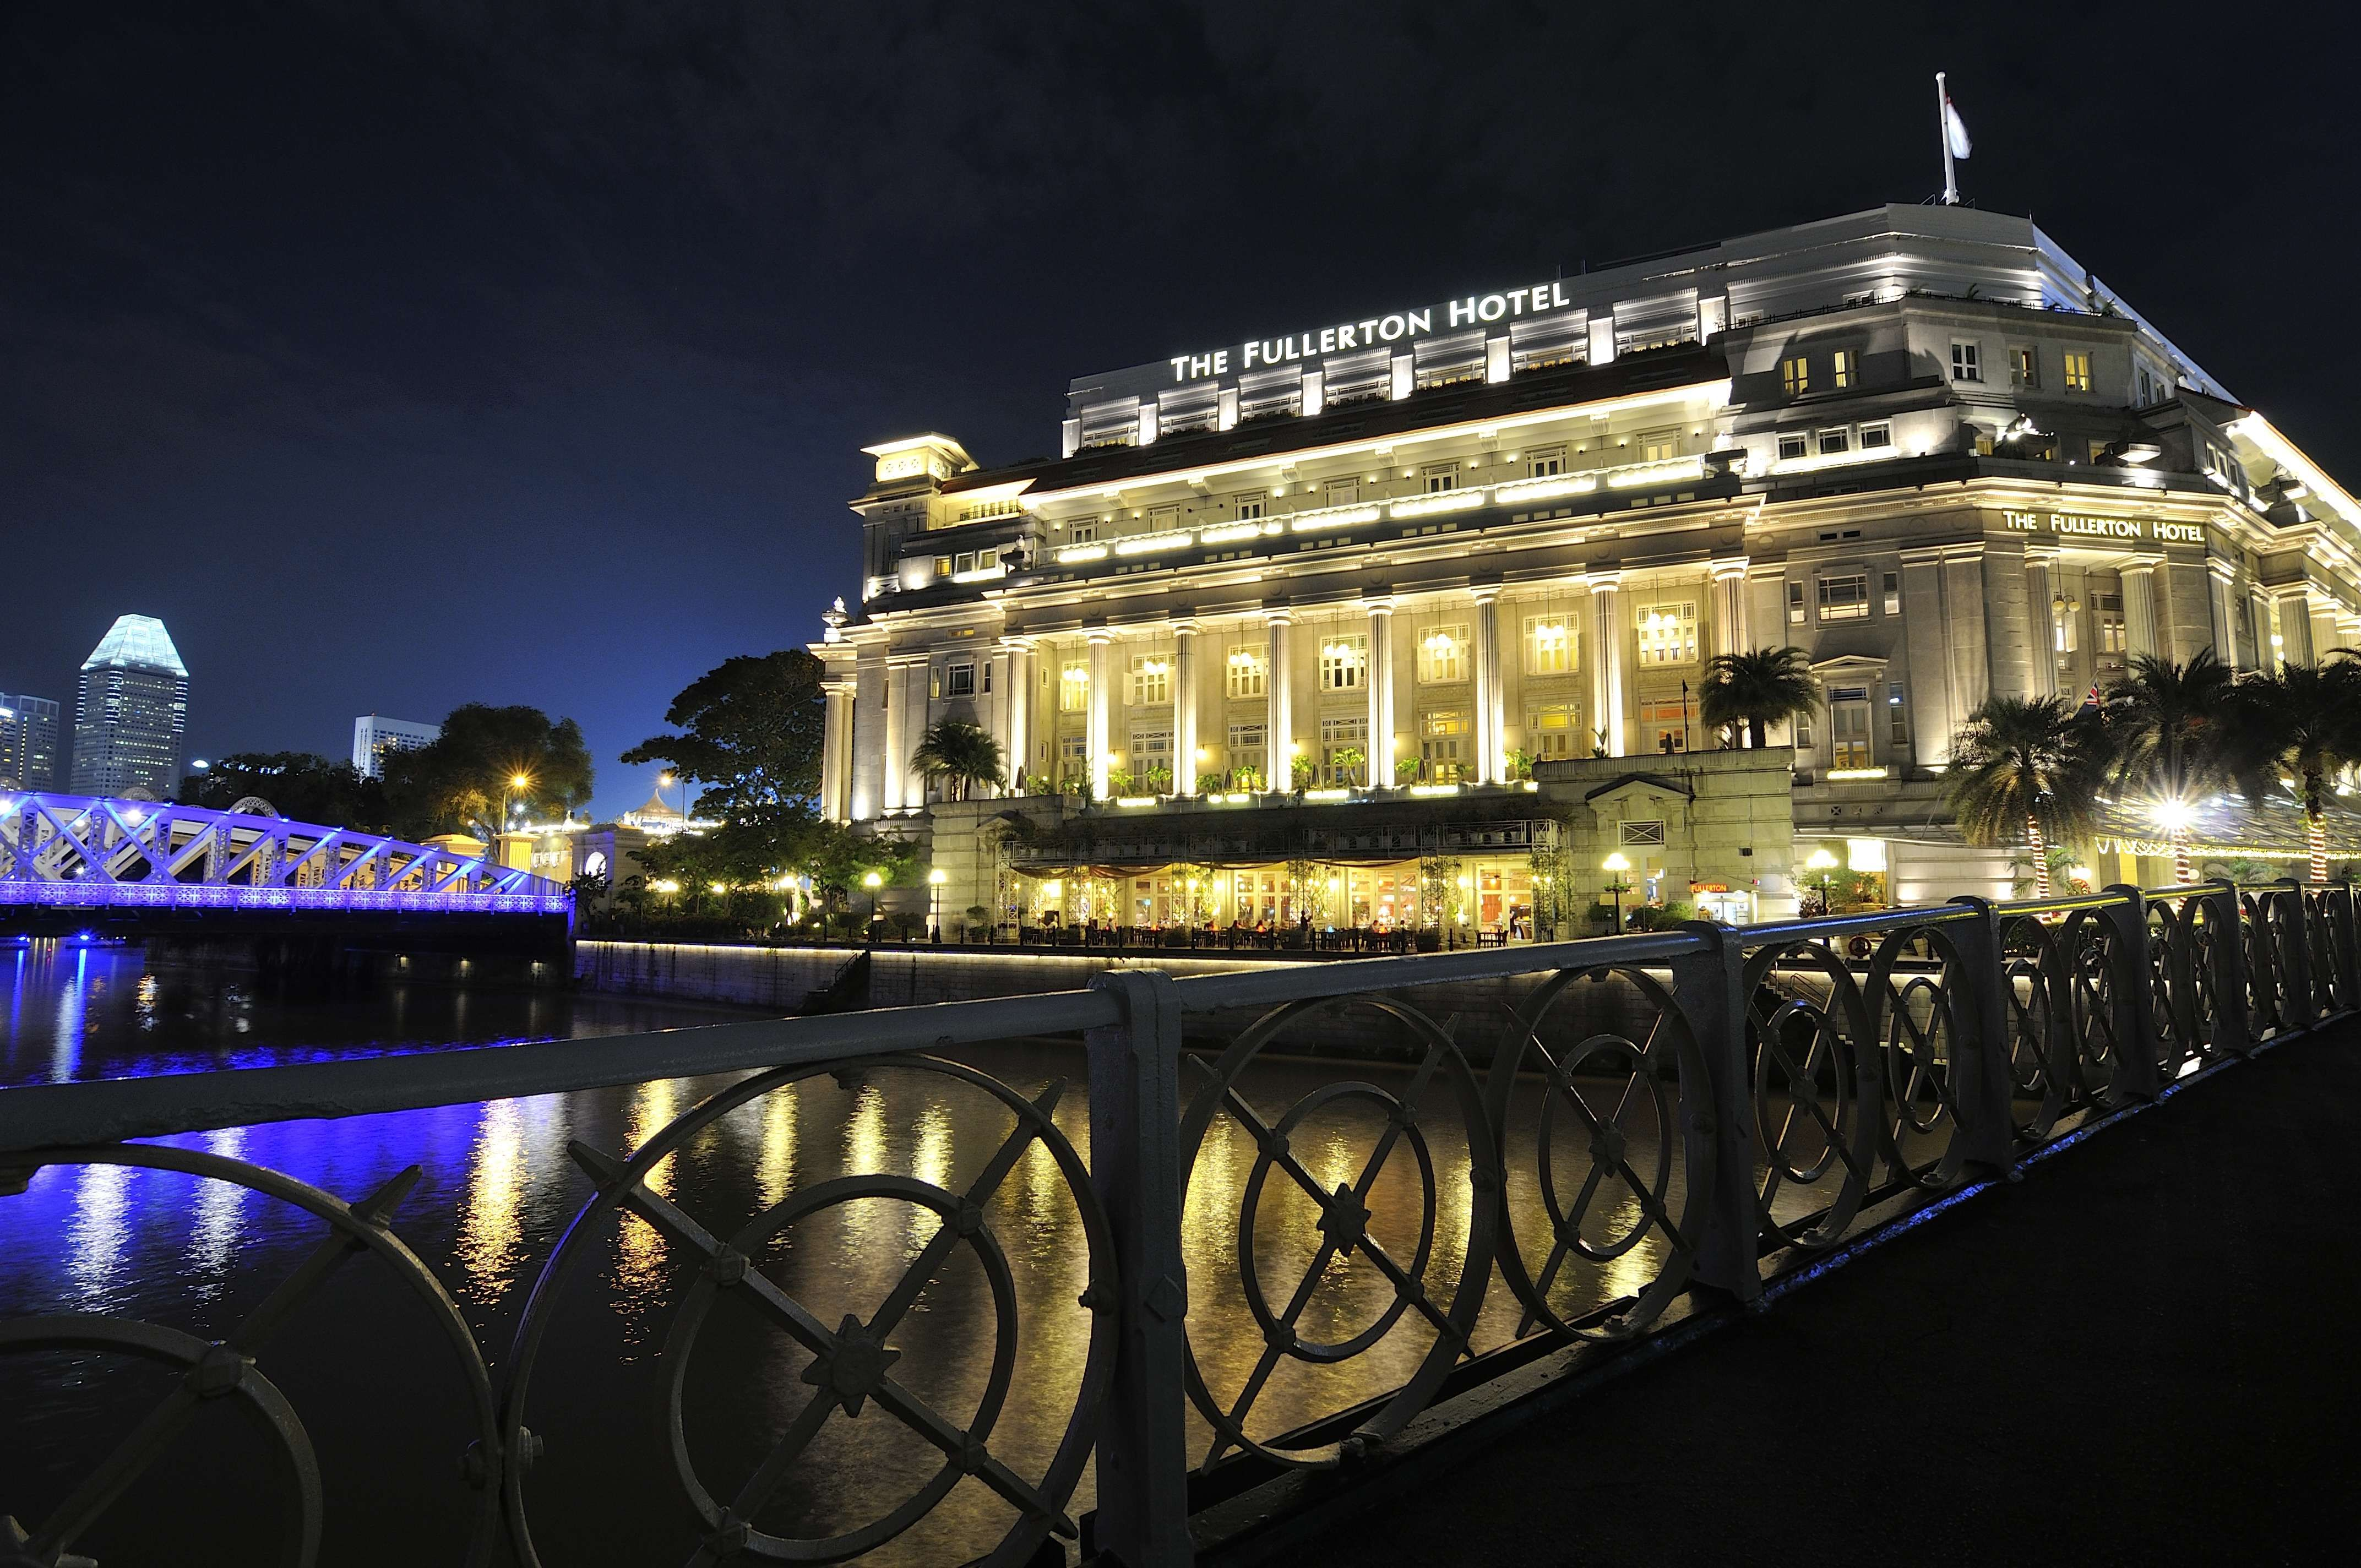 The Fullerton Hotel Singapore 6 Star Luxury Fullerton Hotel Holiday Photos Places Around The World